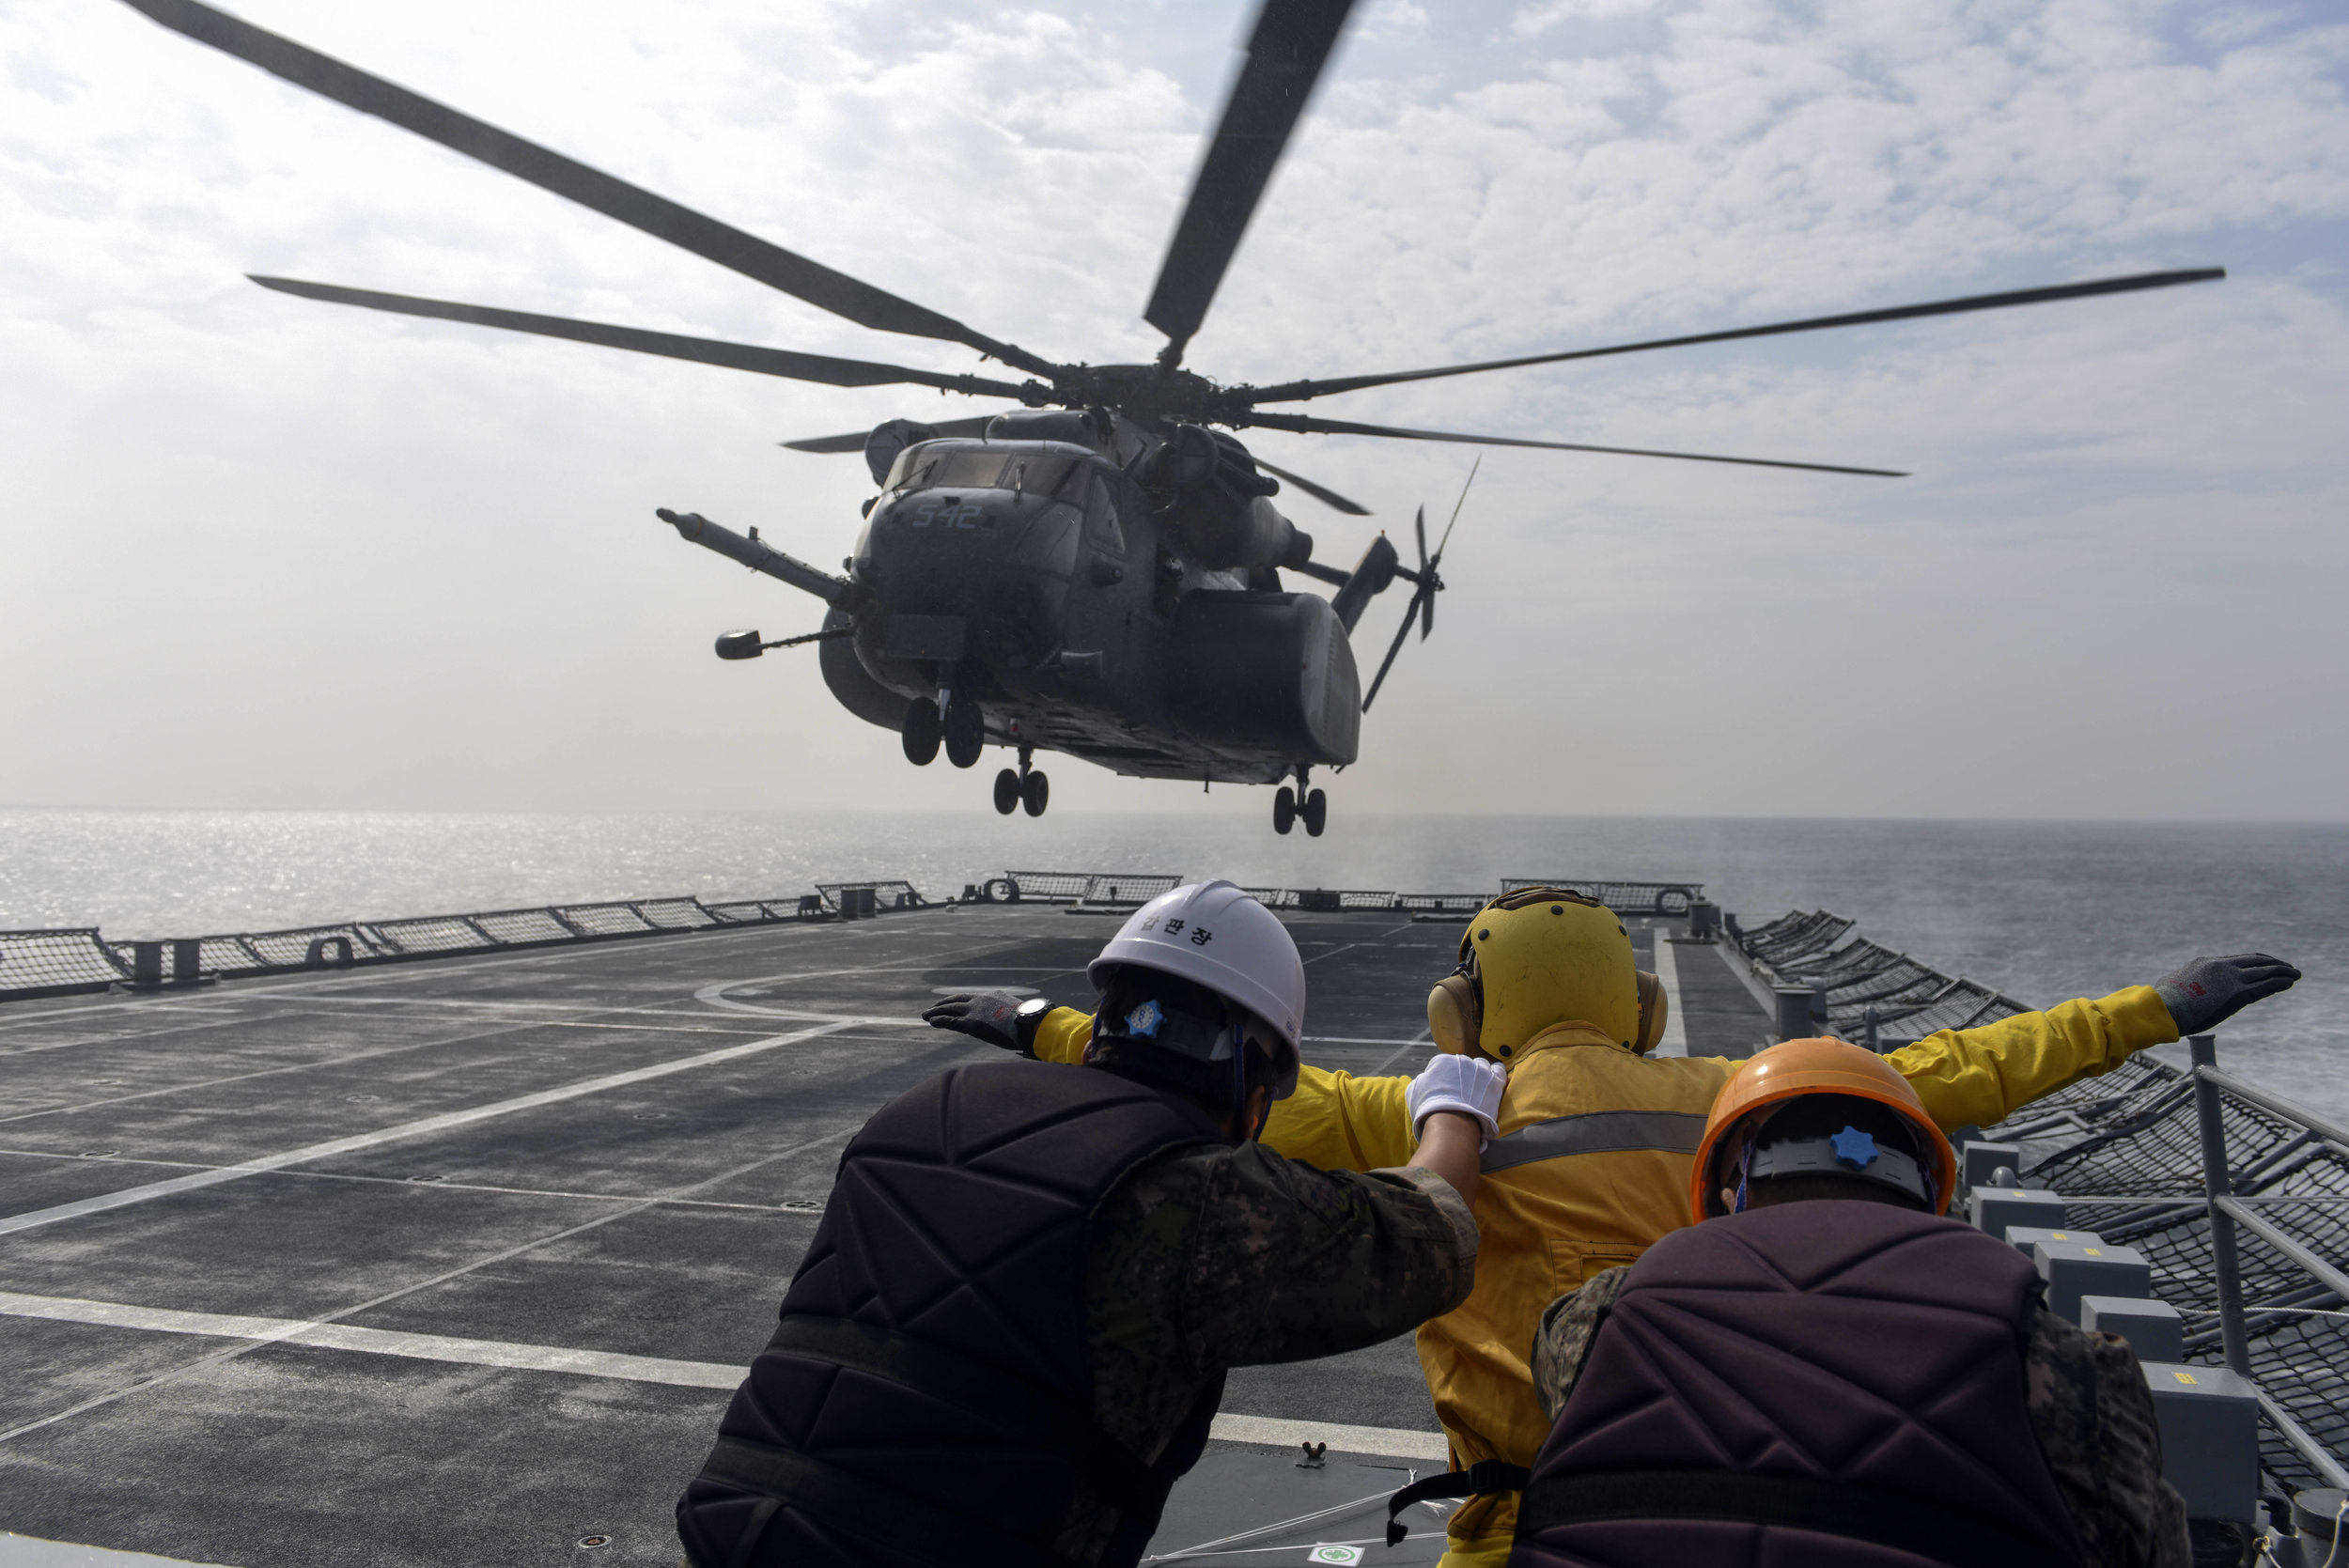 (Oct. 18, 2016) An MH-53E Sea Dragon helicopter from Helicopter Squadron (HM) 14, approaches the Republic of Korea (ROK) mine laying ship ROKS Wonsan (MLS 560), during exercise Clear Horizon. (U.S. Navy photo by Petty Officer 2nd Class Jermaine M. Ralliford)